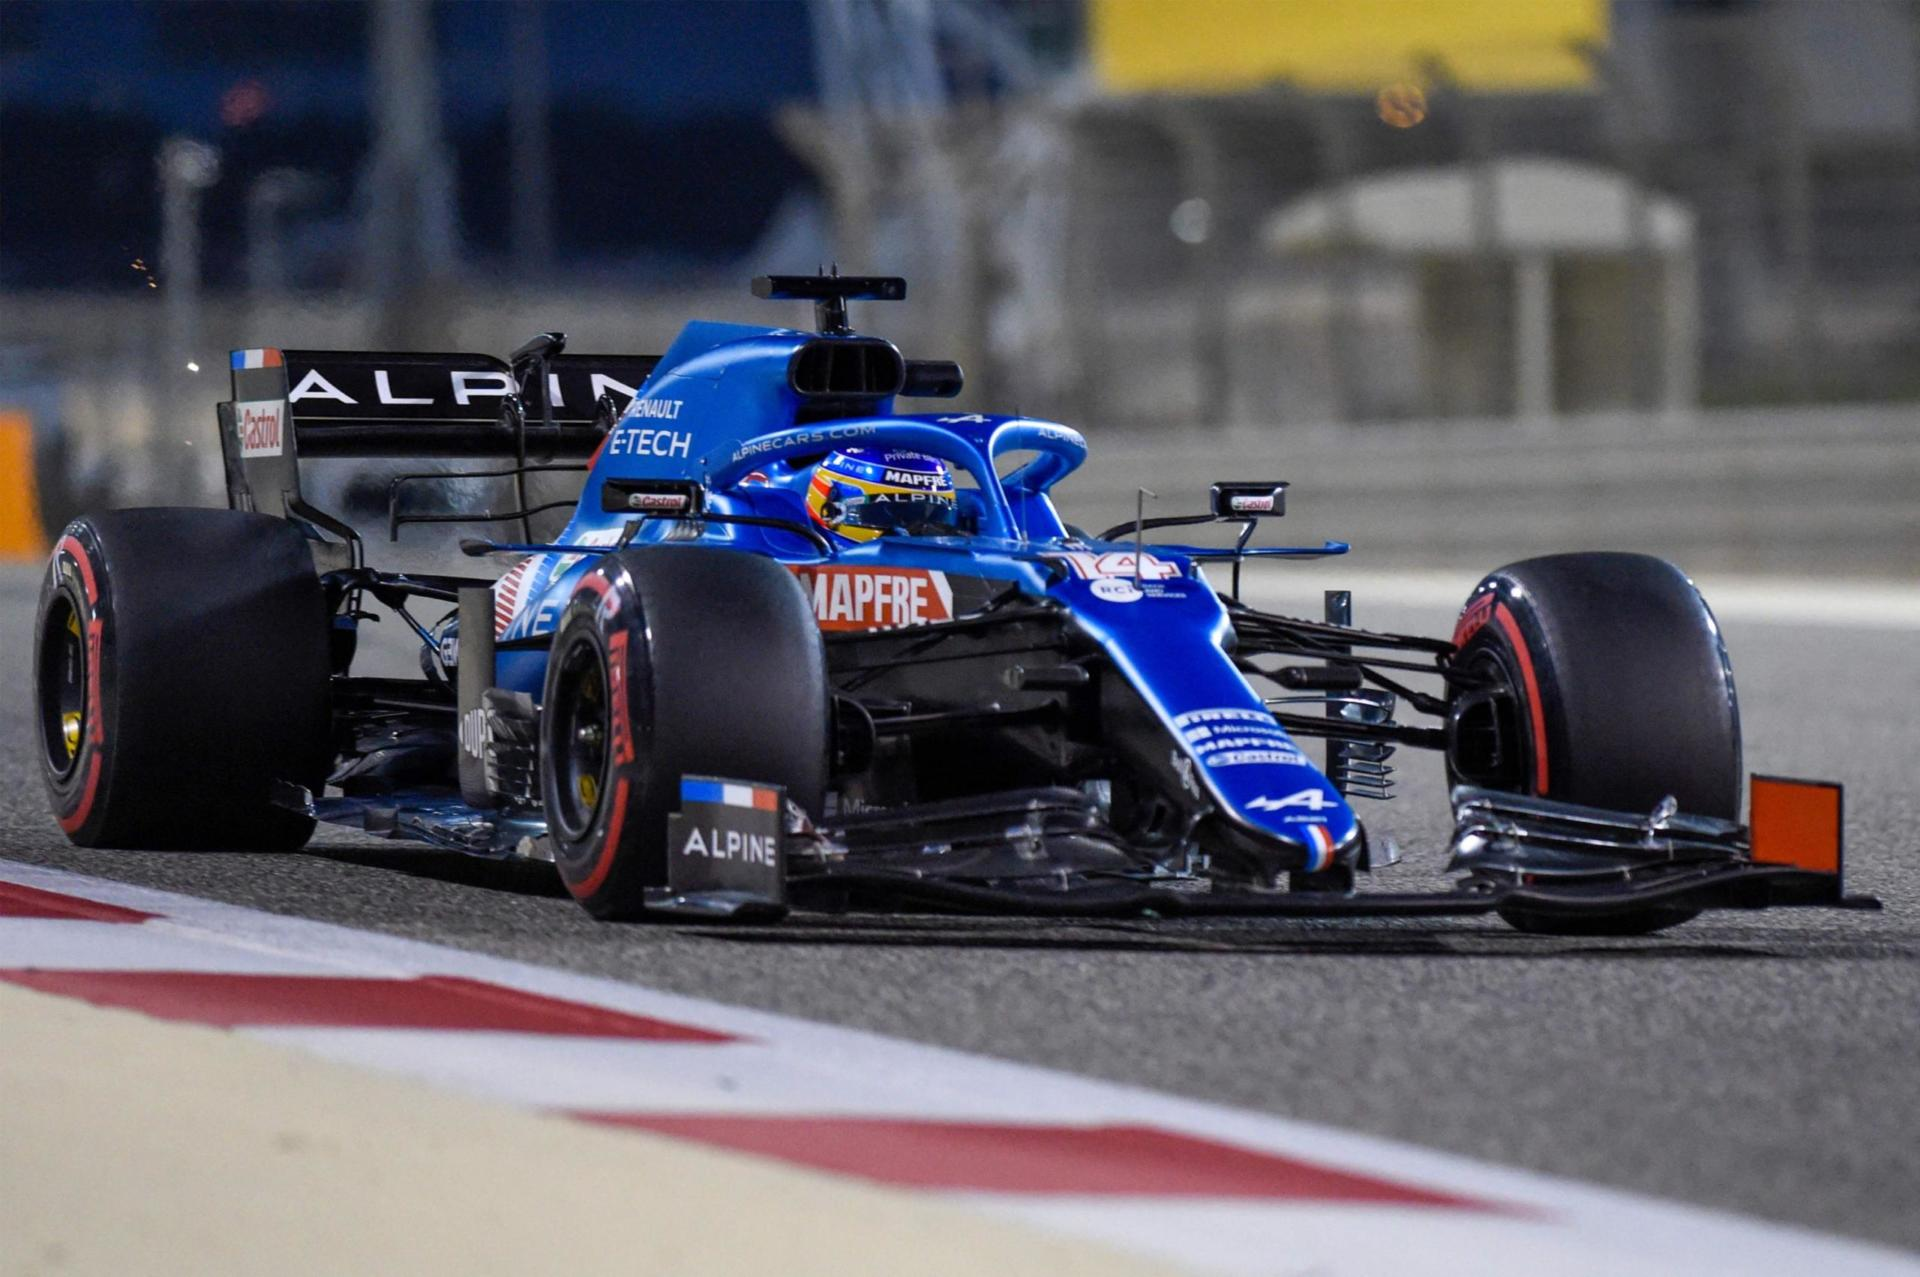 Alpine Is A Clear Step Behind In Performance As Compared To The Rest Of The Midfield